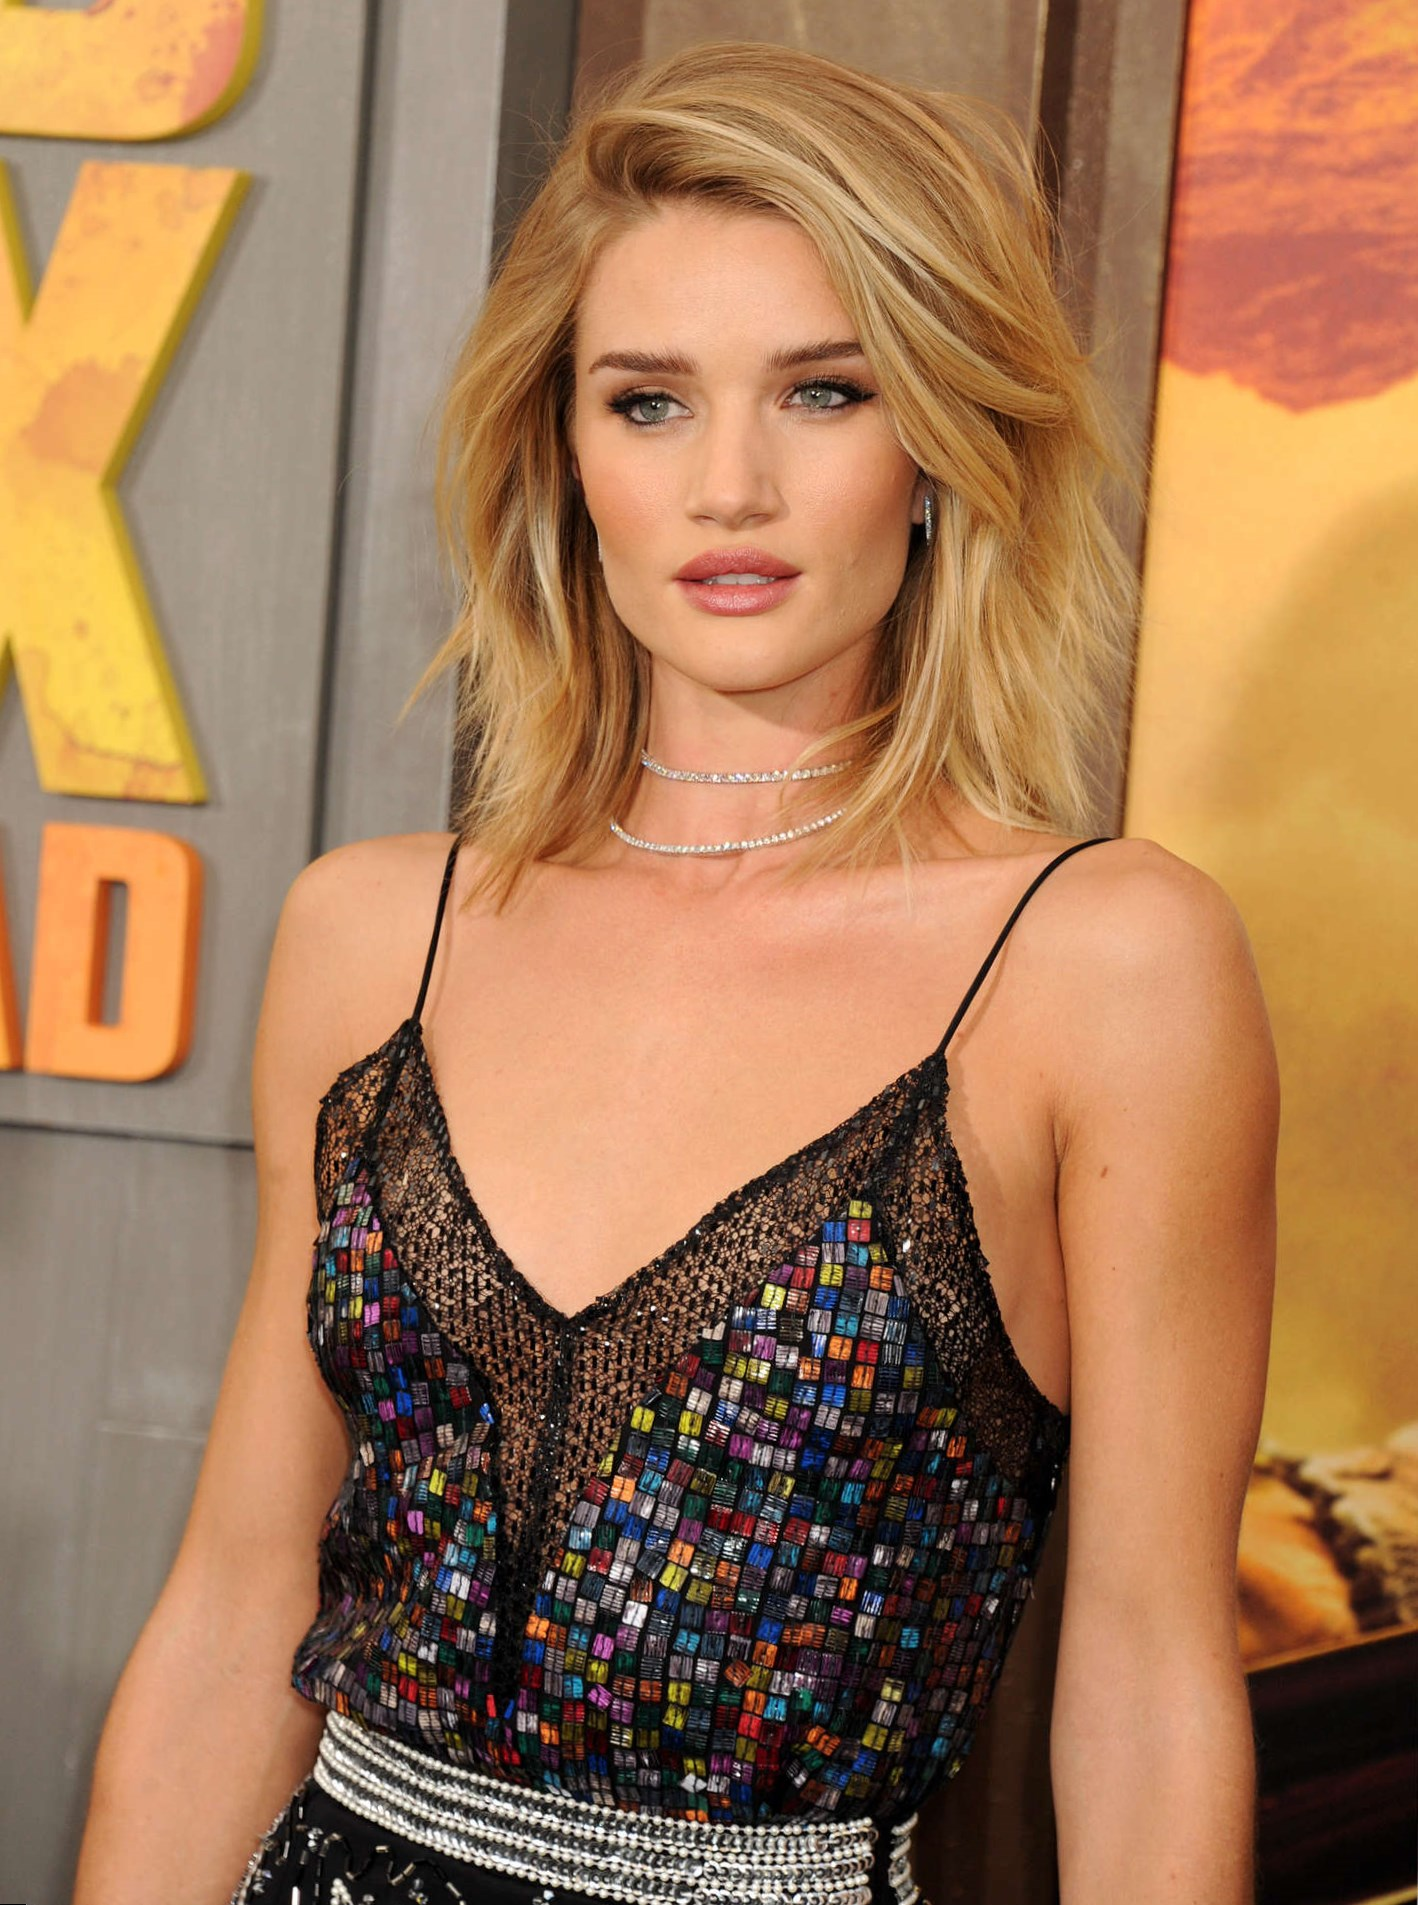 Rosie Huntington-Whiteley - Best Looks & Style Rosie Huntington Whiteley